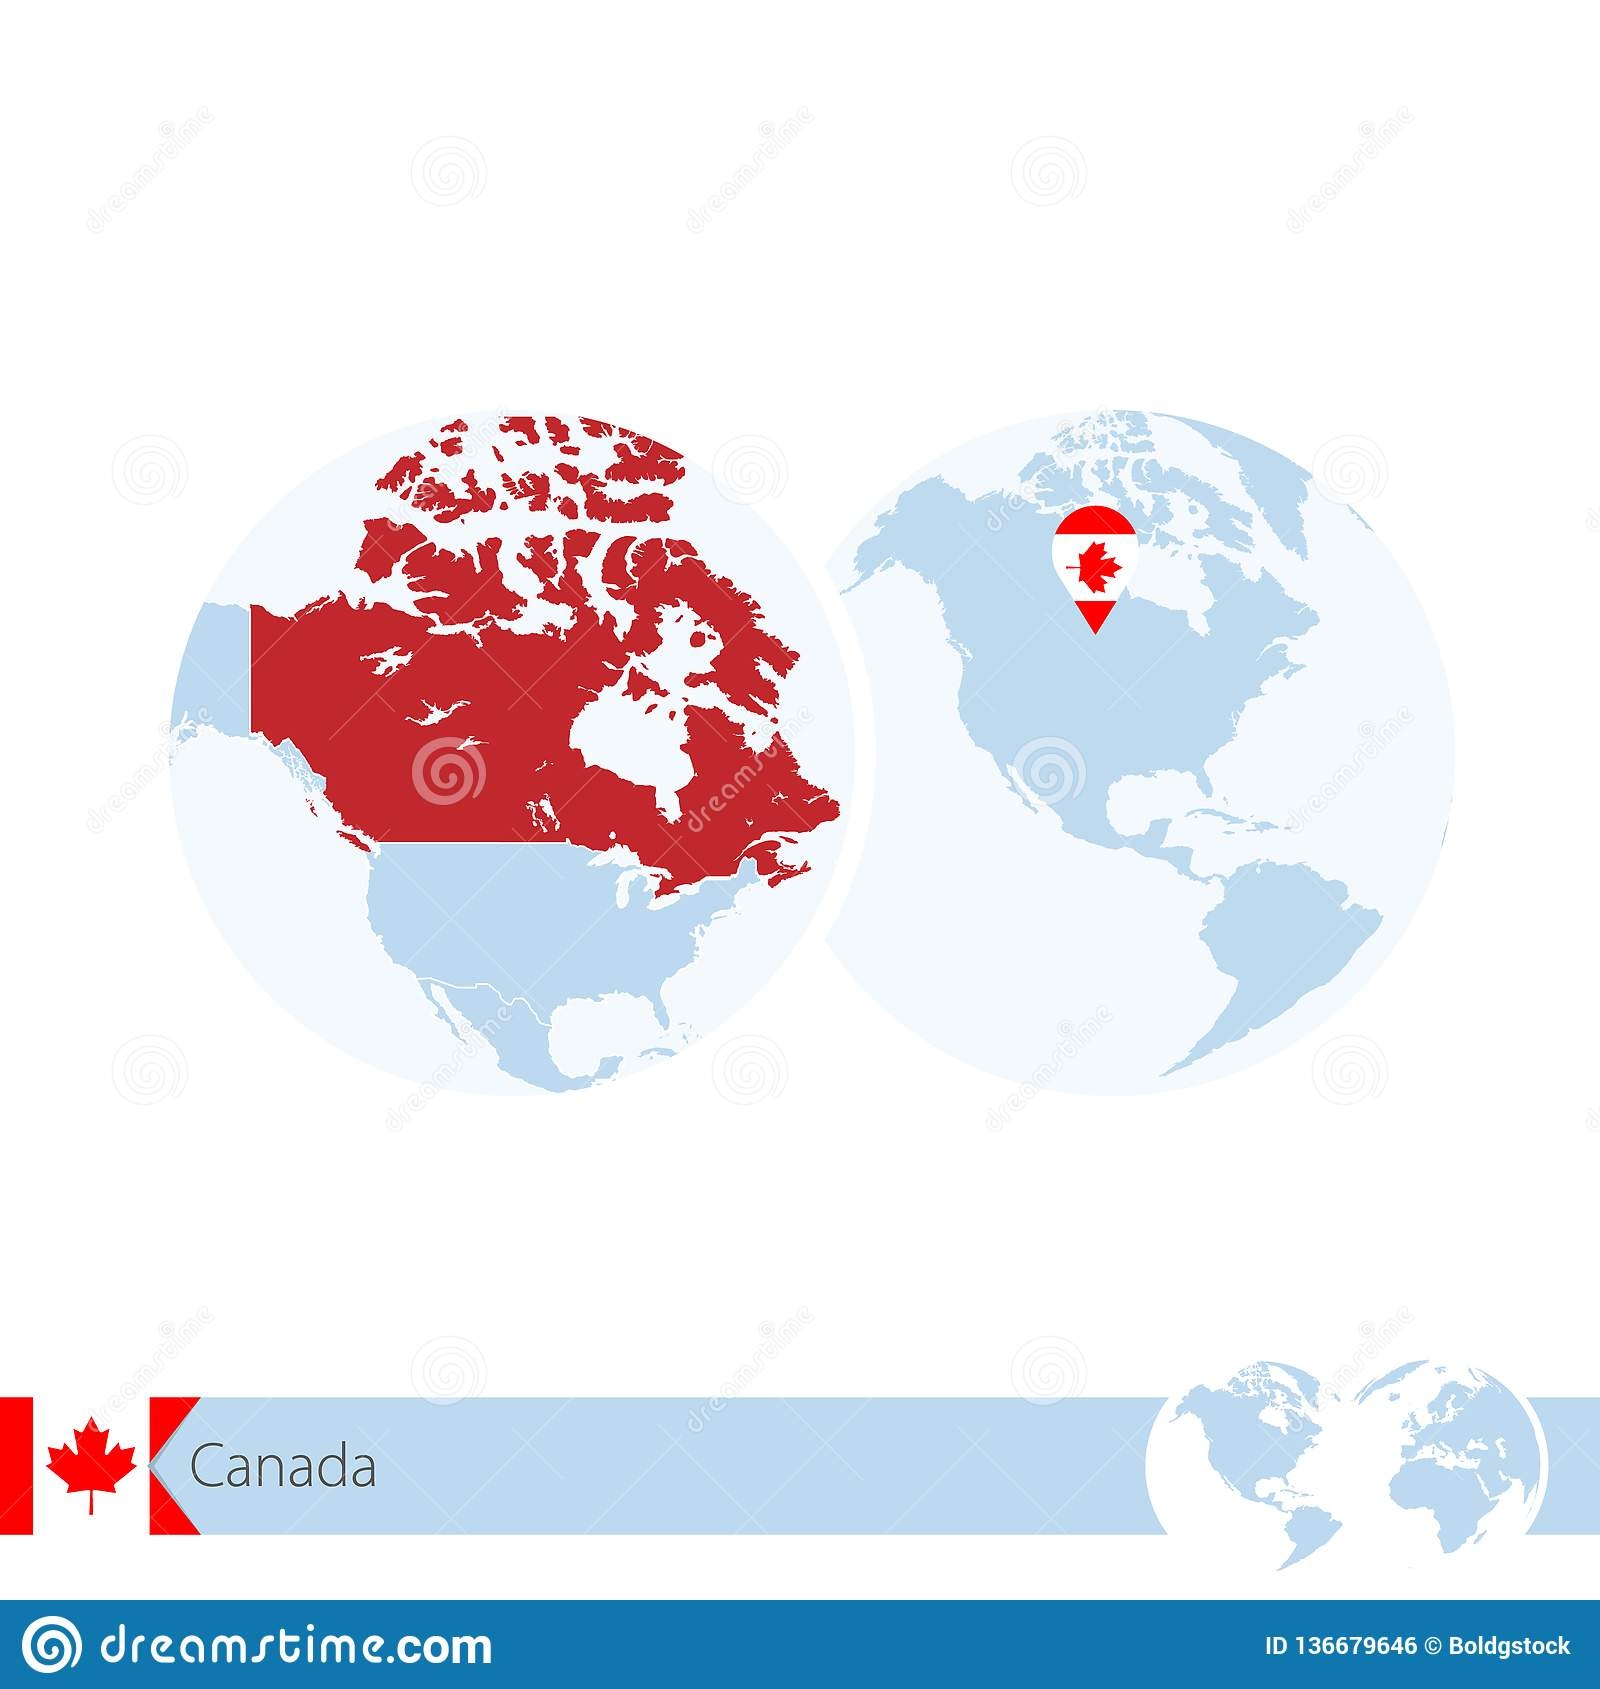 Map Of Canada On Globe.Canada On World Globe With Flag And Regional Map Of Canada Stock